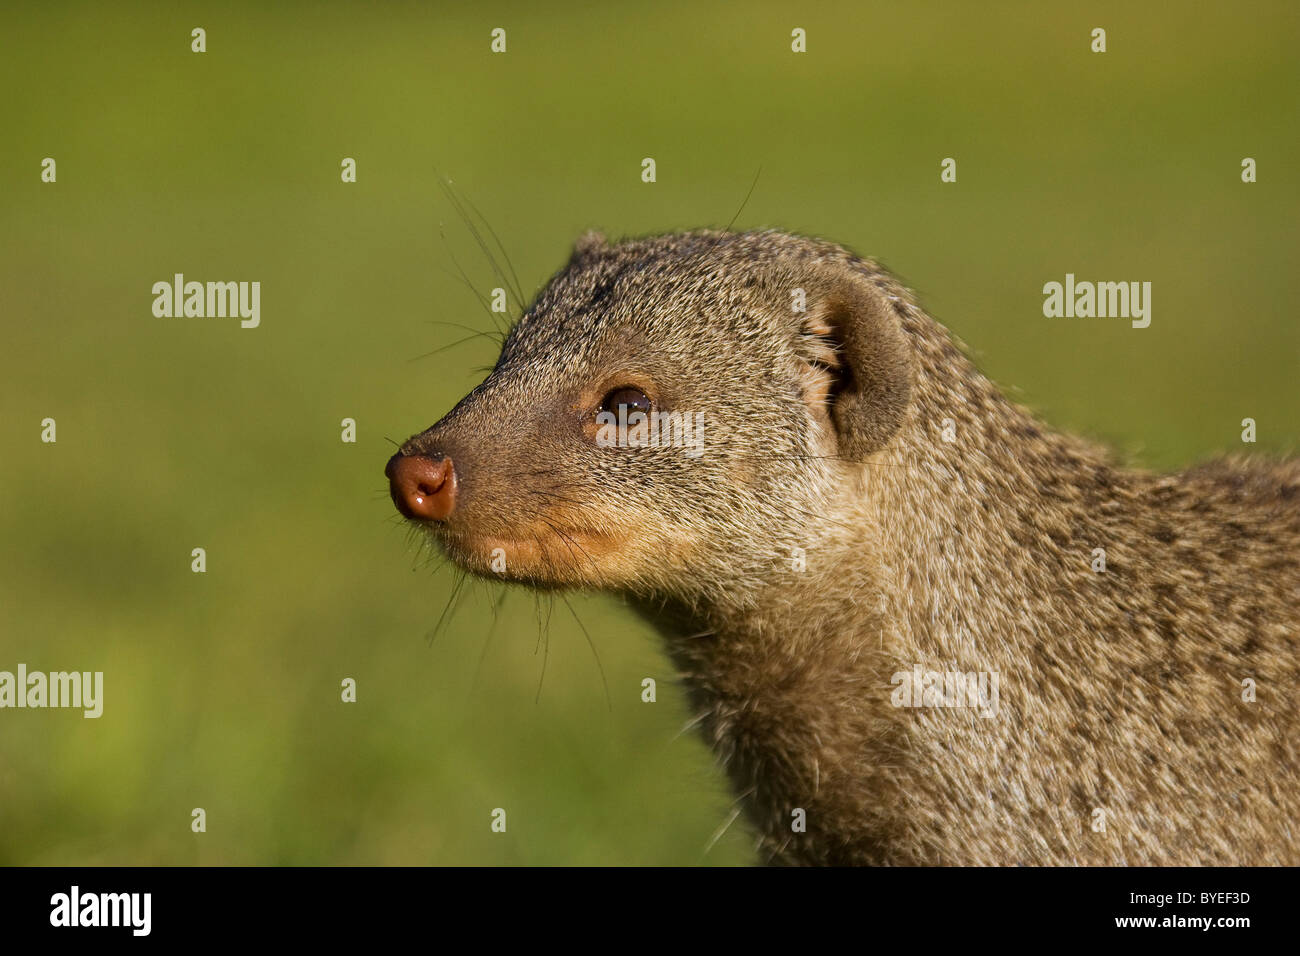 Mongoose bagués (Mungos mungo), portrait. Harnas Wildlife Foundation, la Namibie. Photo Stock